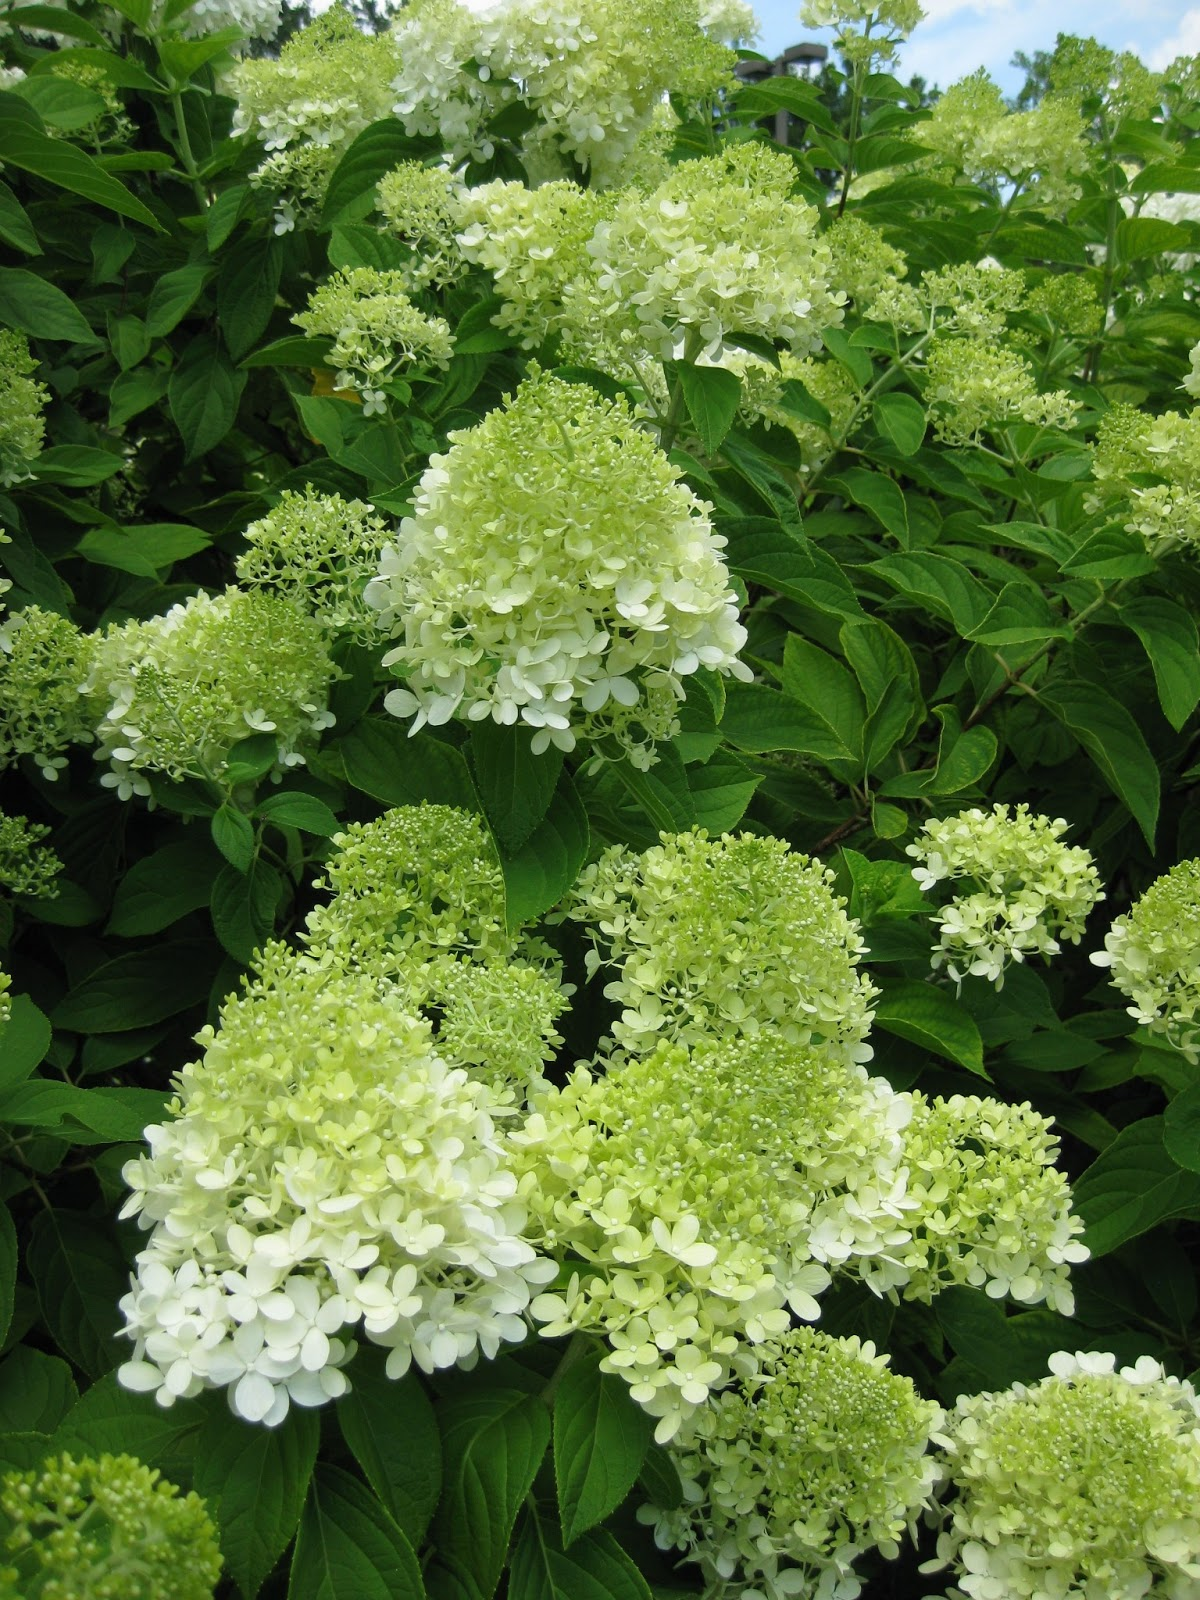 rotary botanical gardens hort blog panicled hydrangeas for a landscape punch. Black Bedroom Furniture Sets. Home Design Ideas